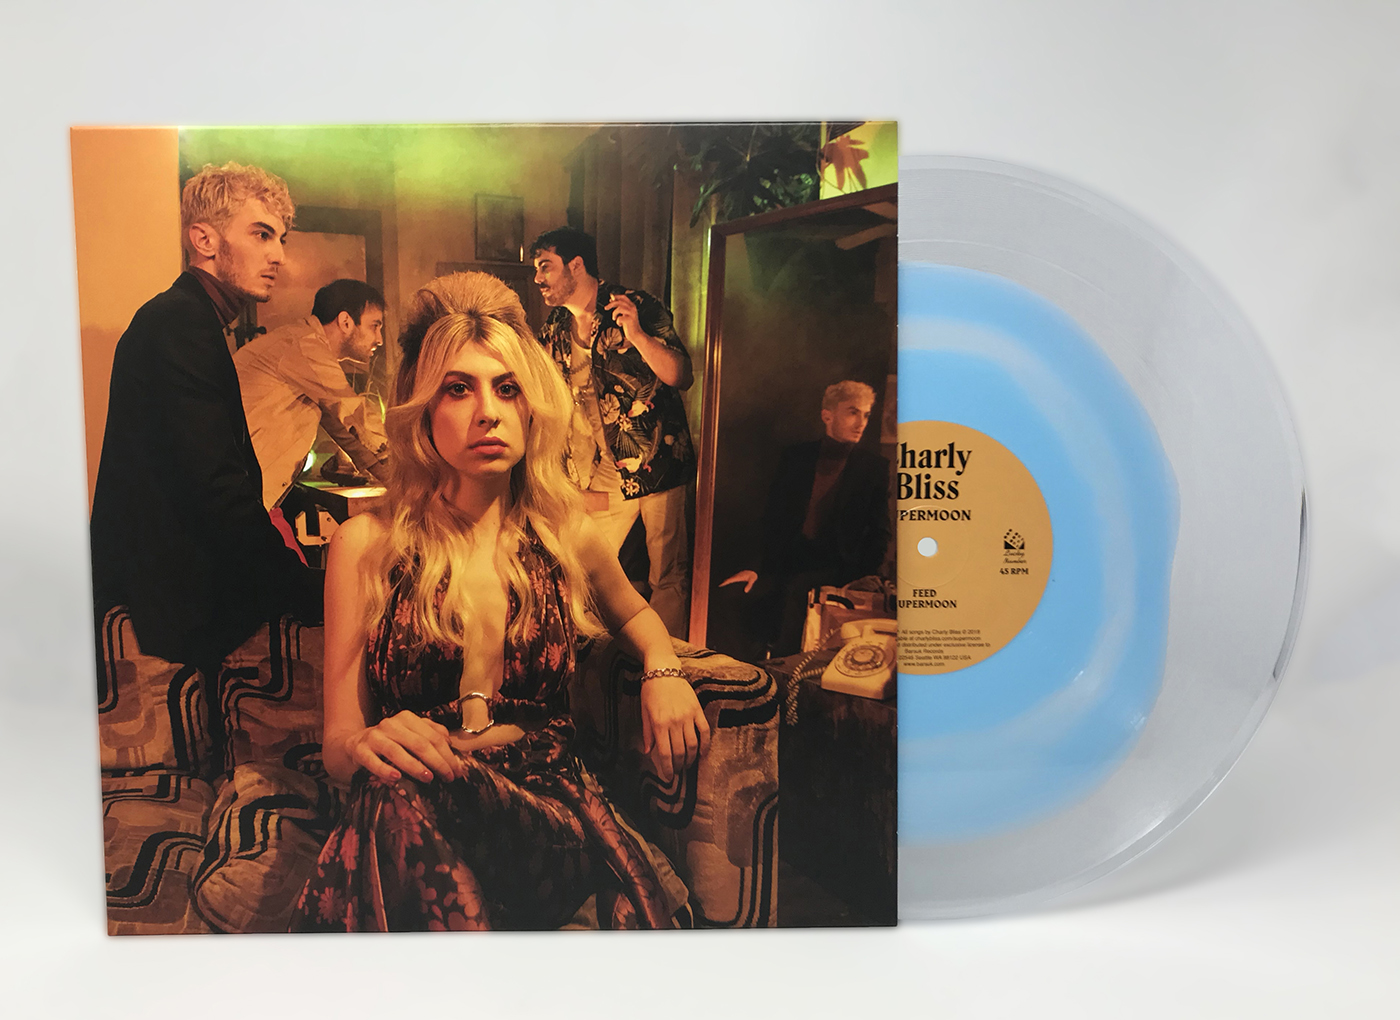 Charly Bliss vinyl